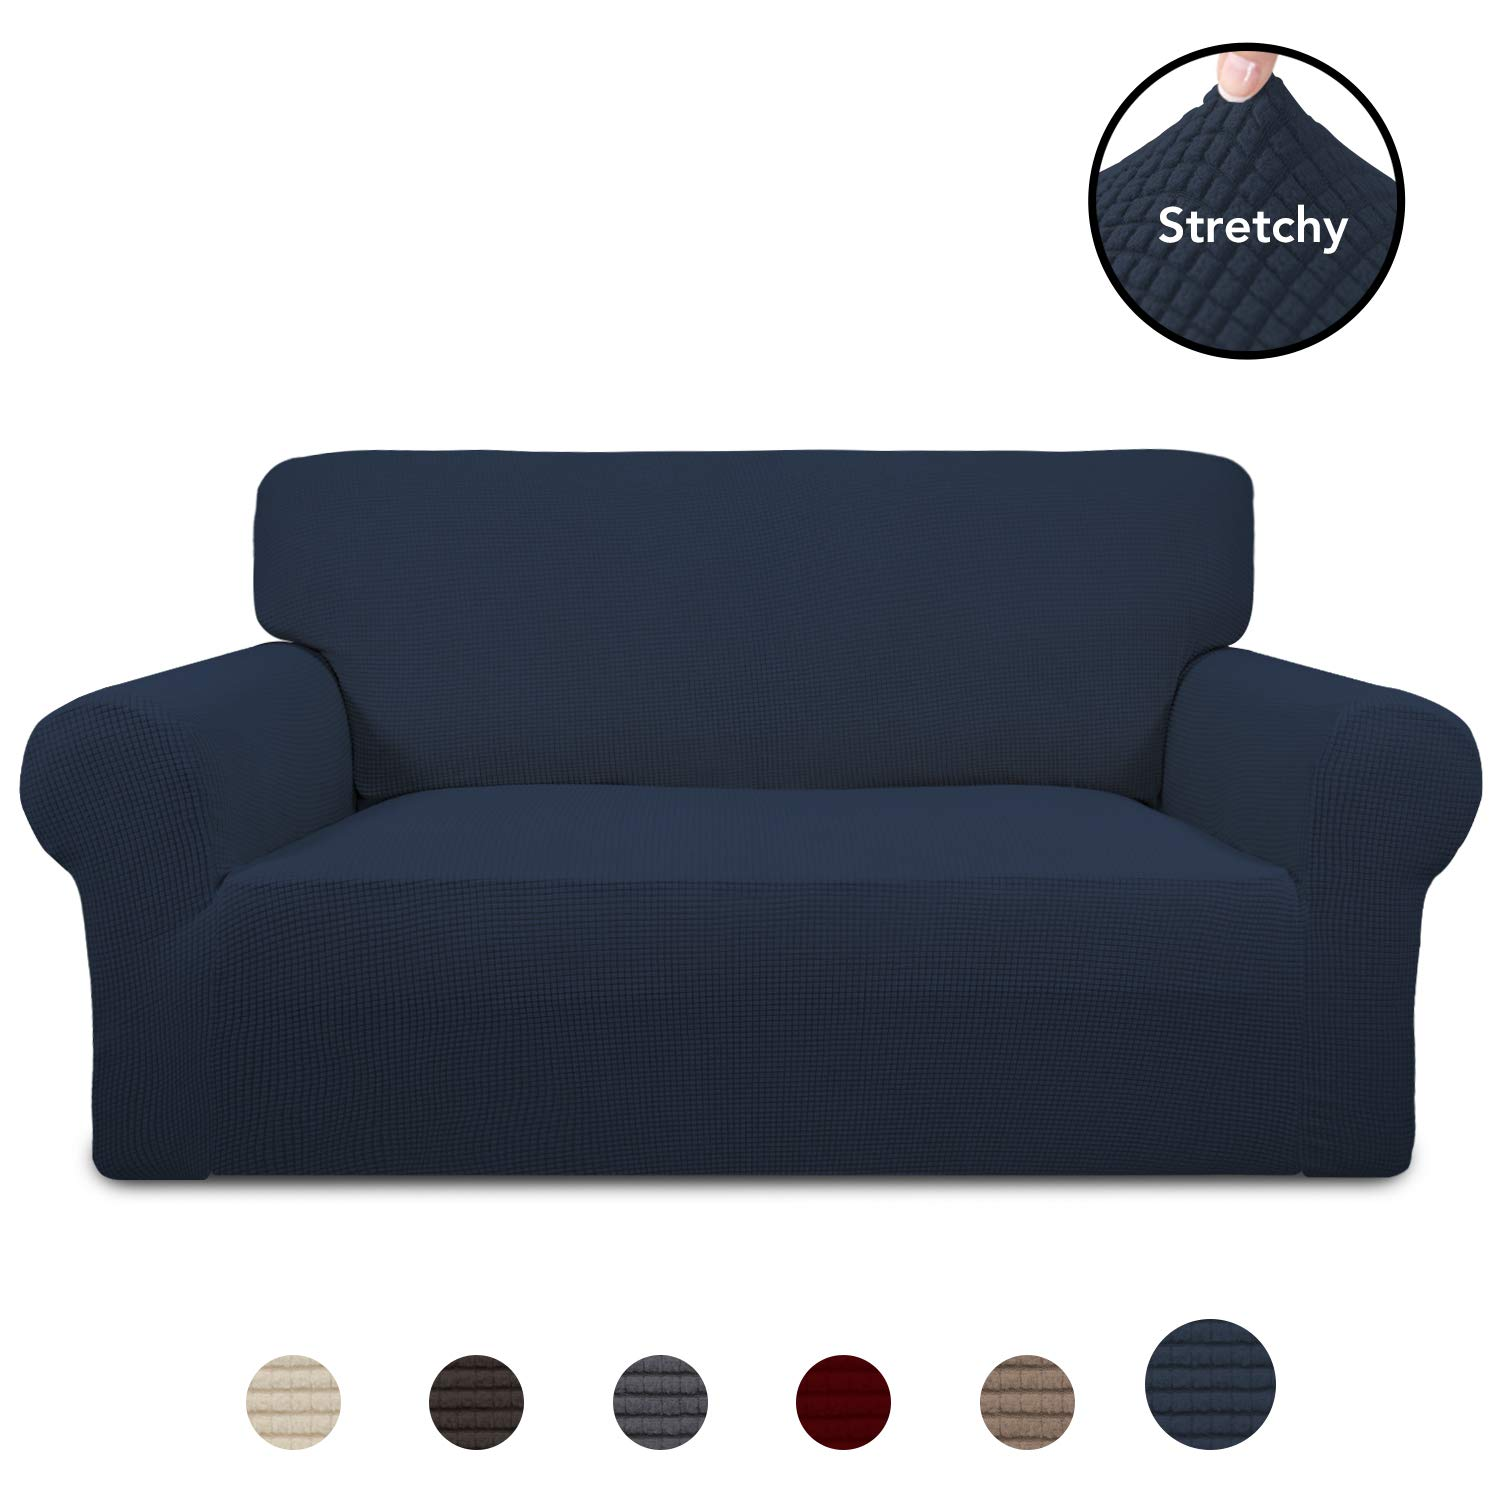 PureFit Stretch Loveseat Sofa Slipcover - Spandex Jacquard Anti-Slip Soft Couch Sofa Cover, Washable Furniture Protector with Anti-Skid Foam and Elastic Bottom for Kids (Loveseat, Navy) by PureFit